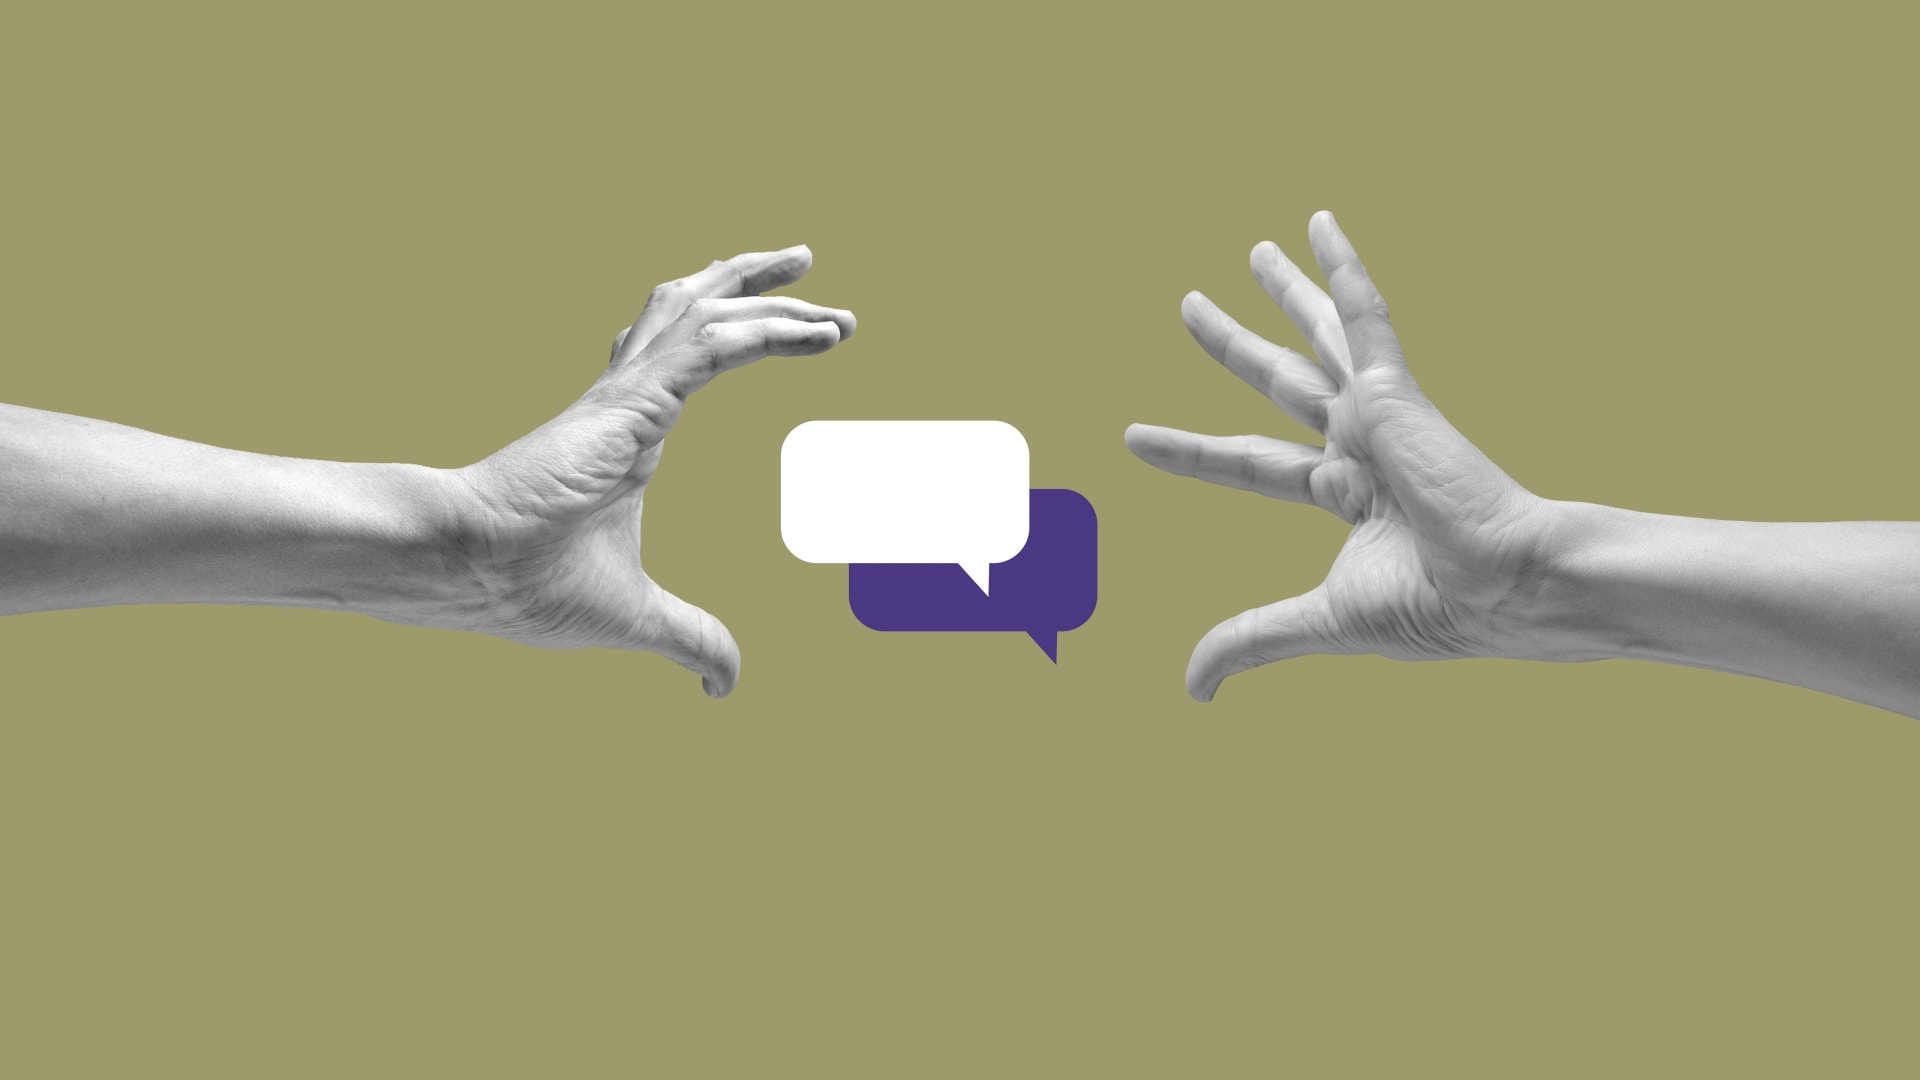 Change Just This 1 Word in Your Questions to Receive Much Better Feedback